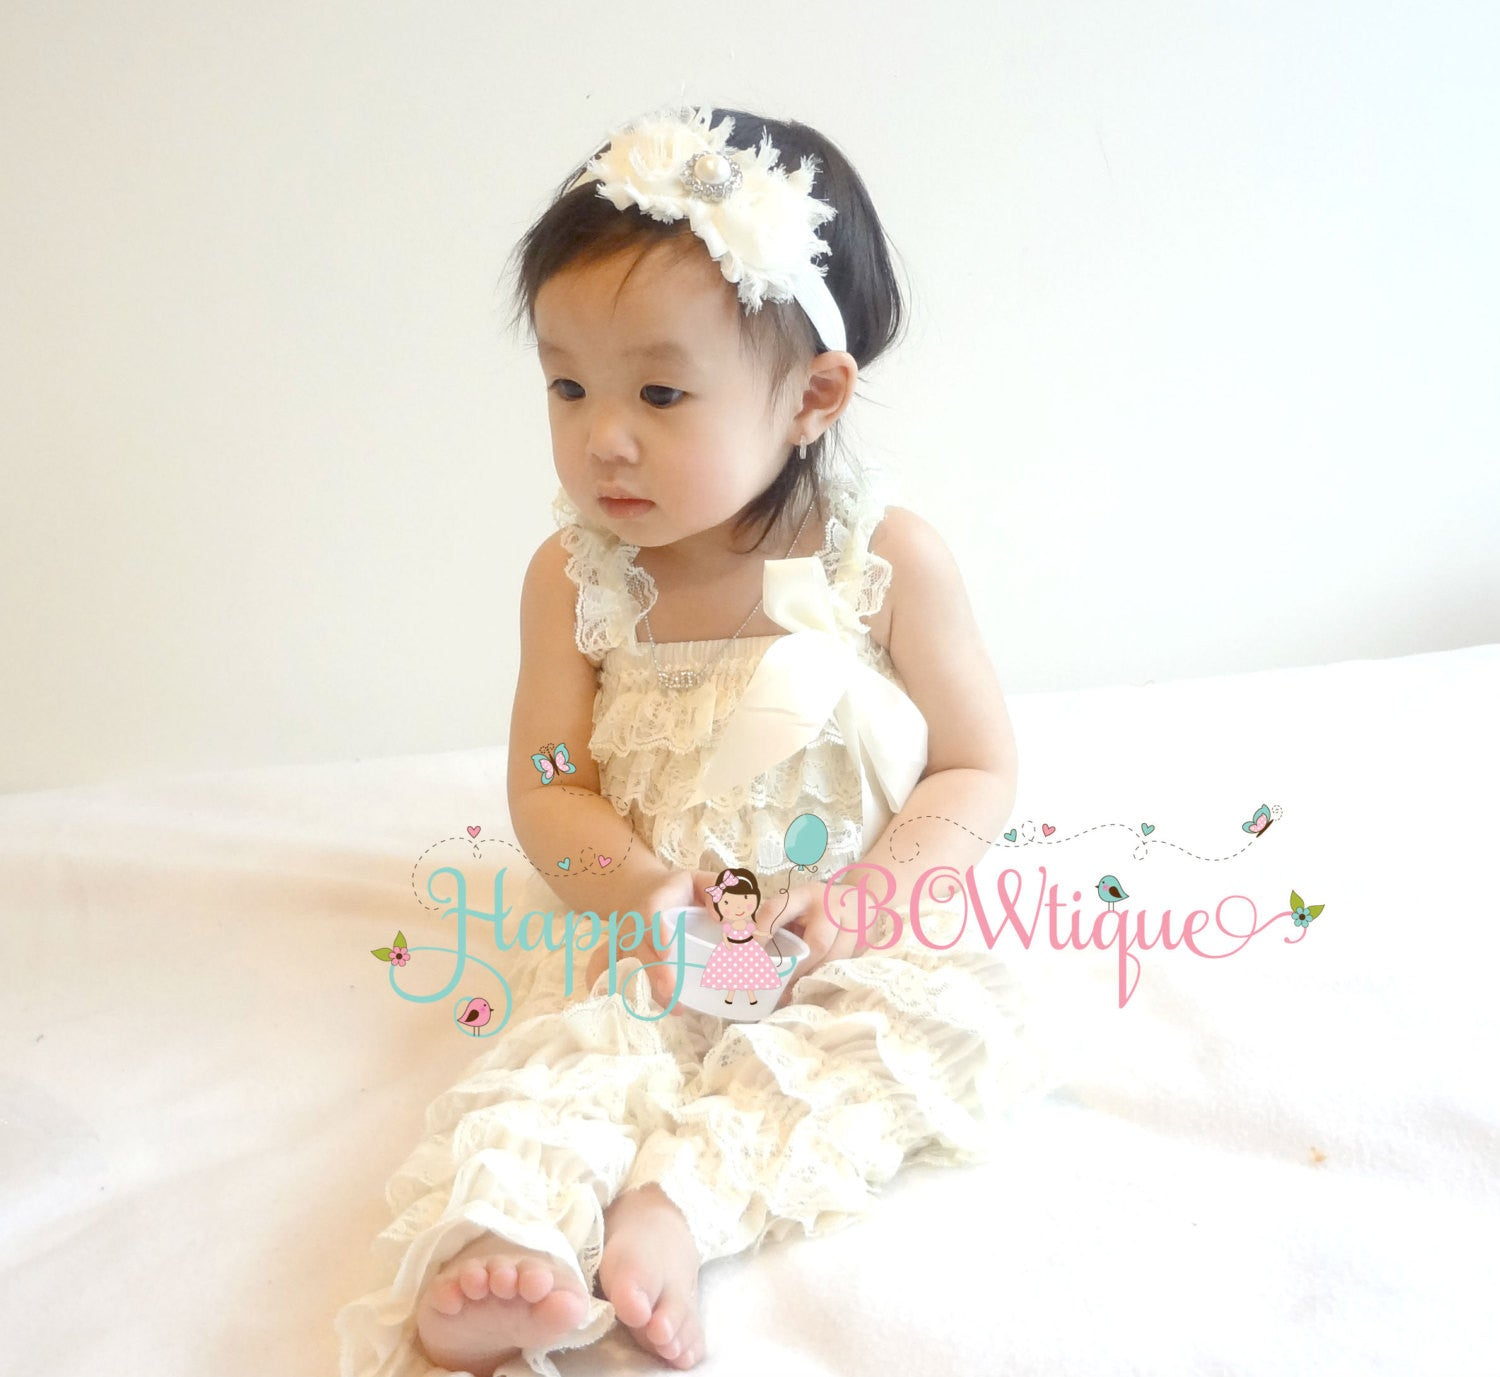 7dbf24c66e30 Vintage Ivory Petti Lace Romper set - Happy BOWtique - children s clothing